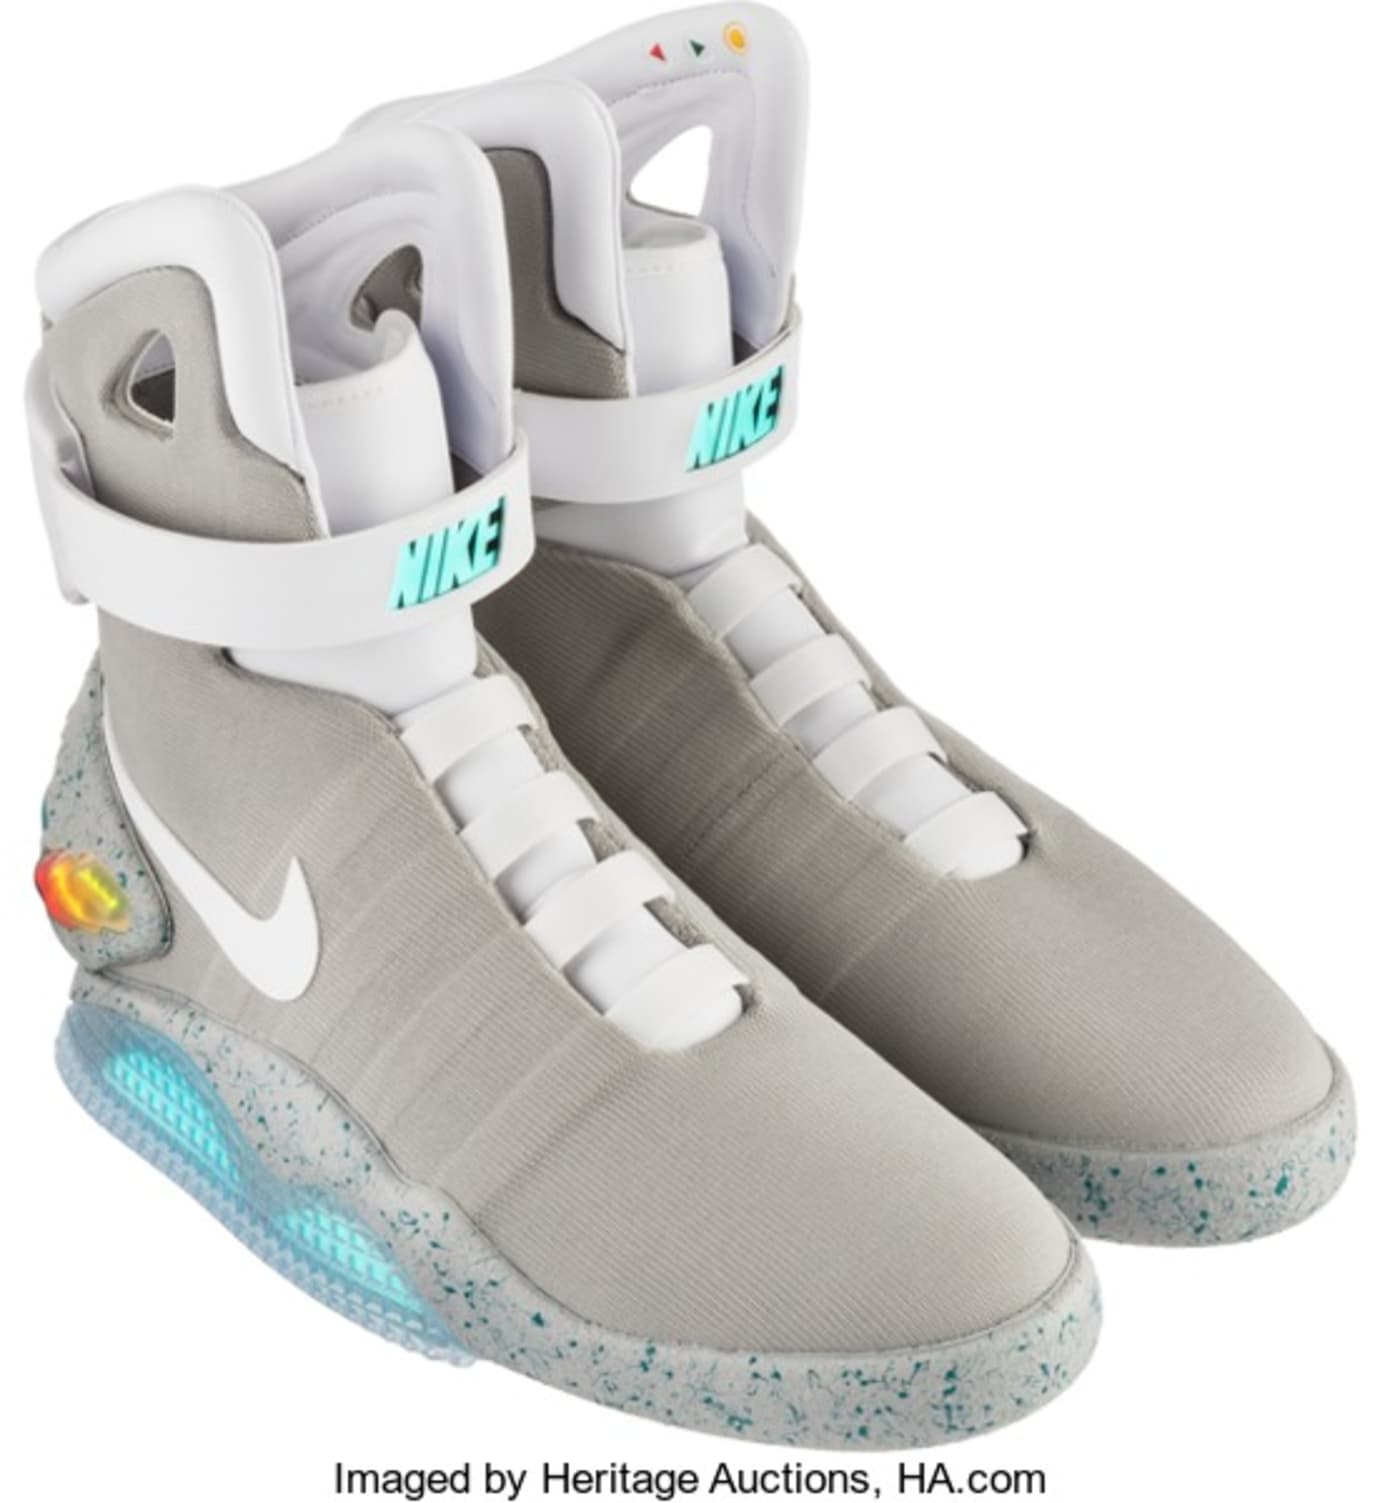 suficiente diamante bomba  Air Mags Set New Auction Record | Sole Collector